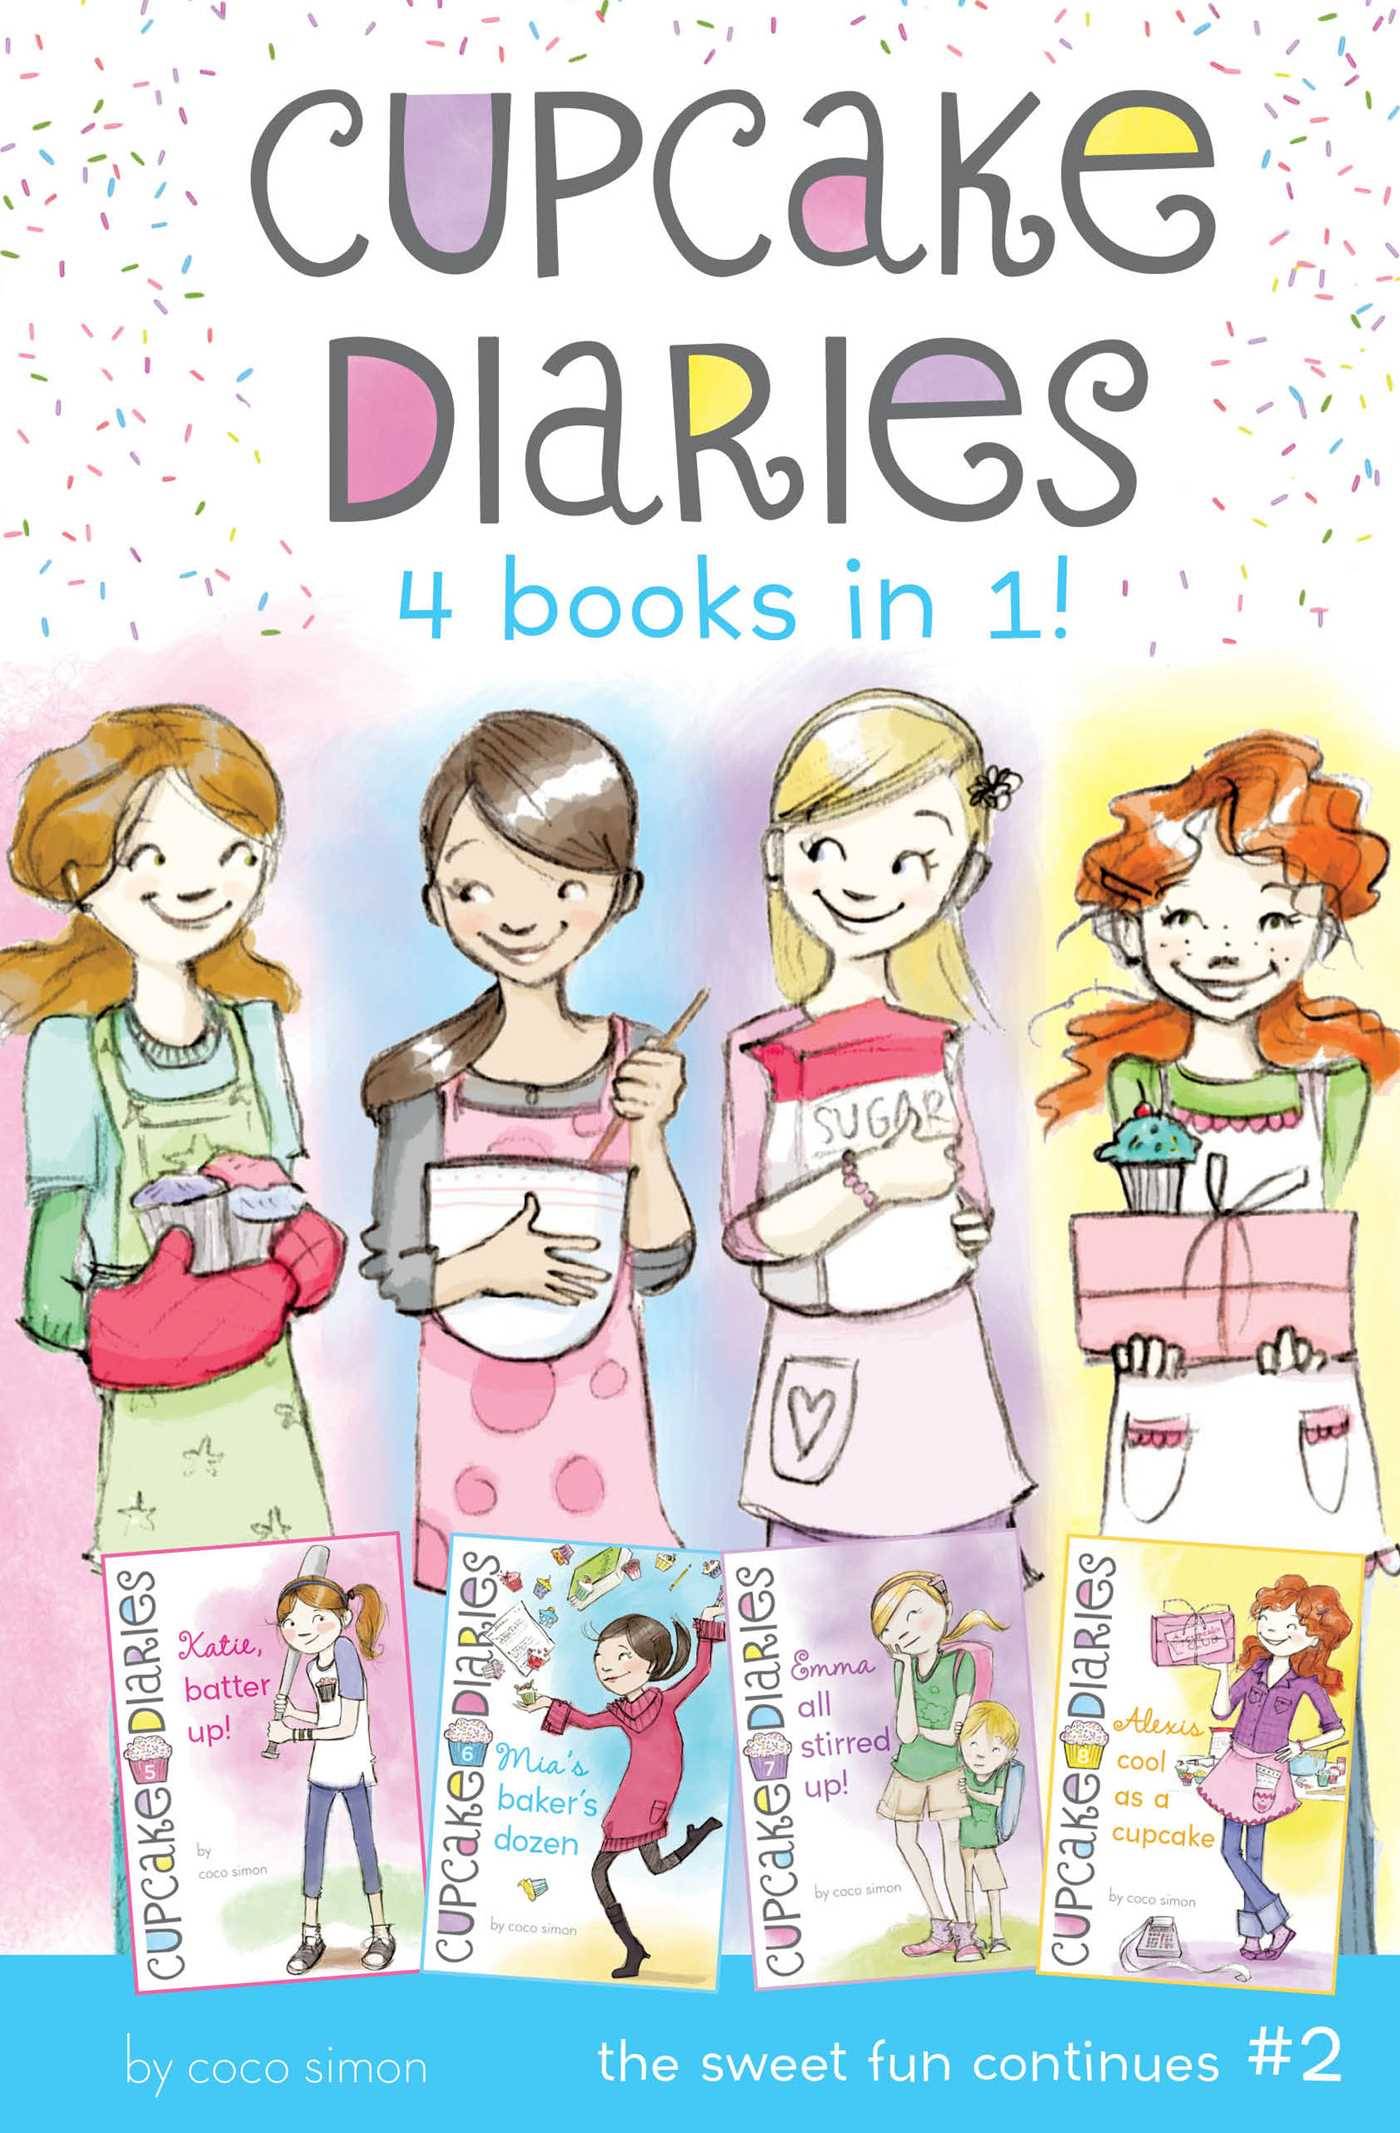 Cupcake diaries 4 books in 1 2 9781481460200 hr